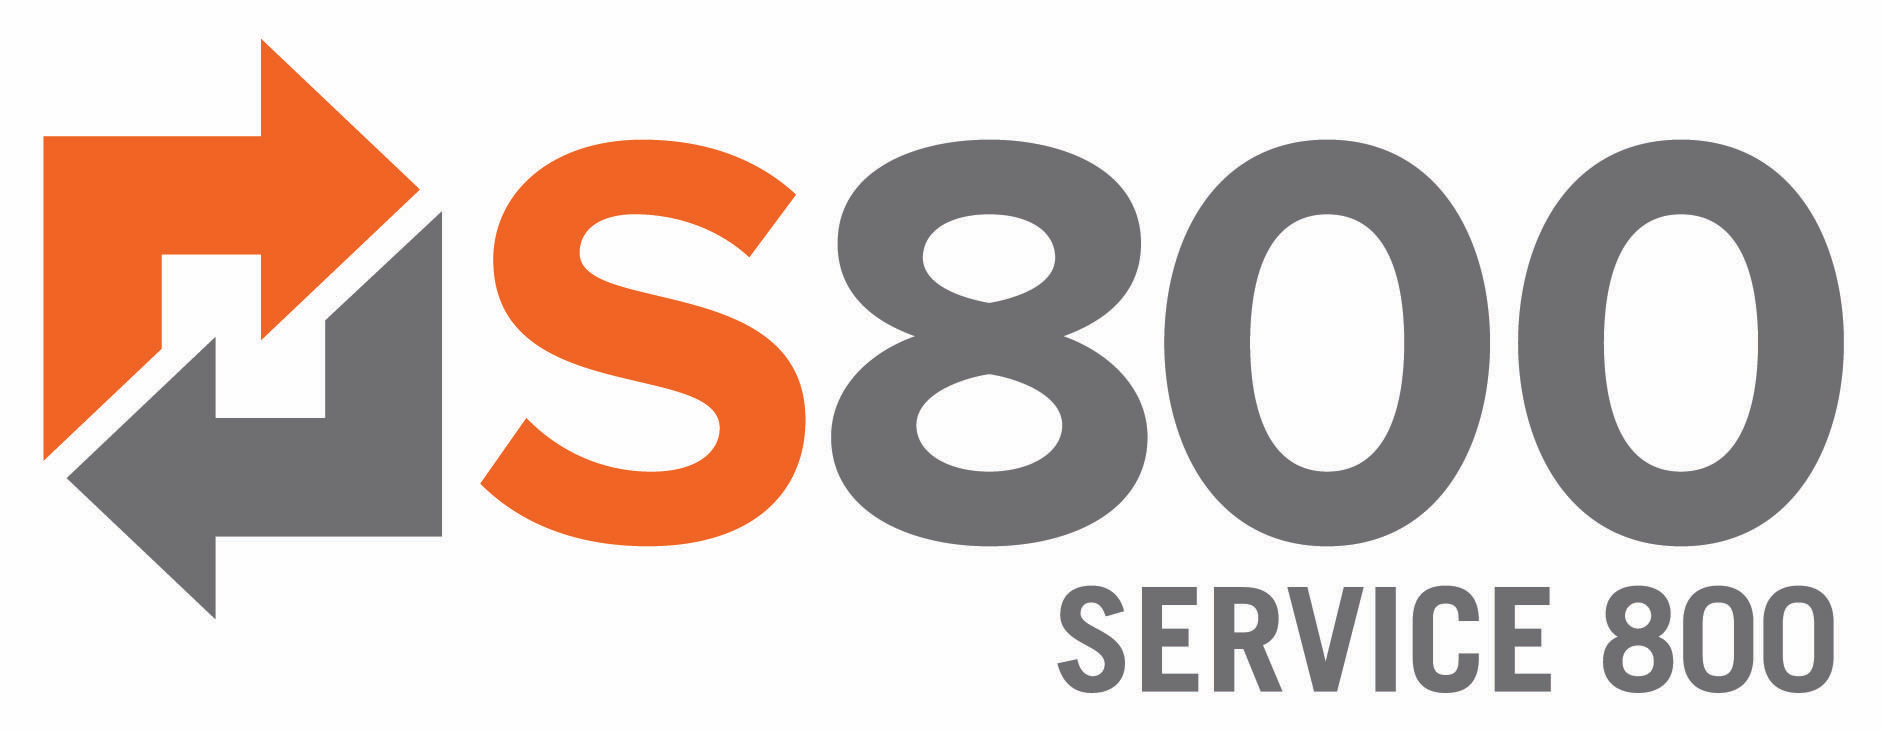 SERVICE 800 - Voice of the Customer